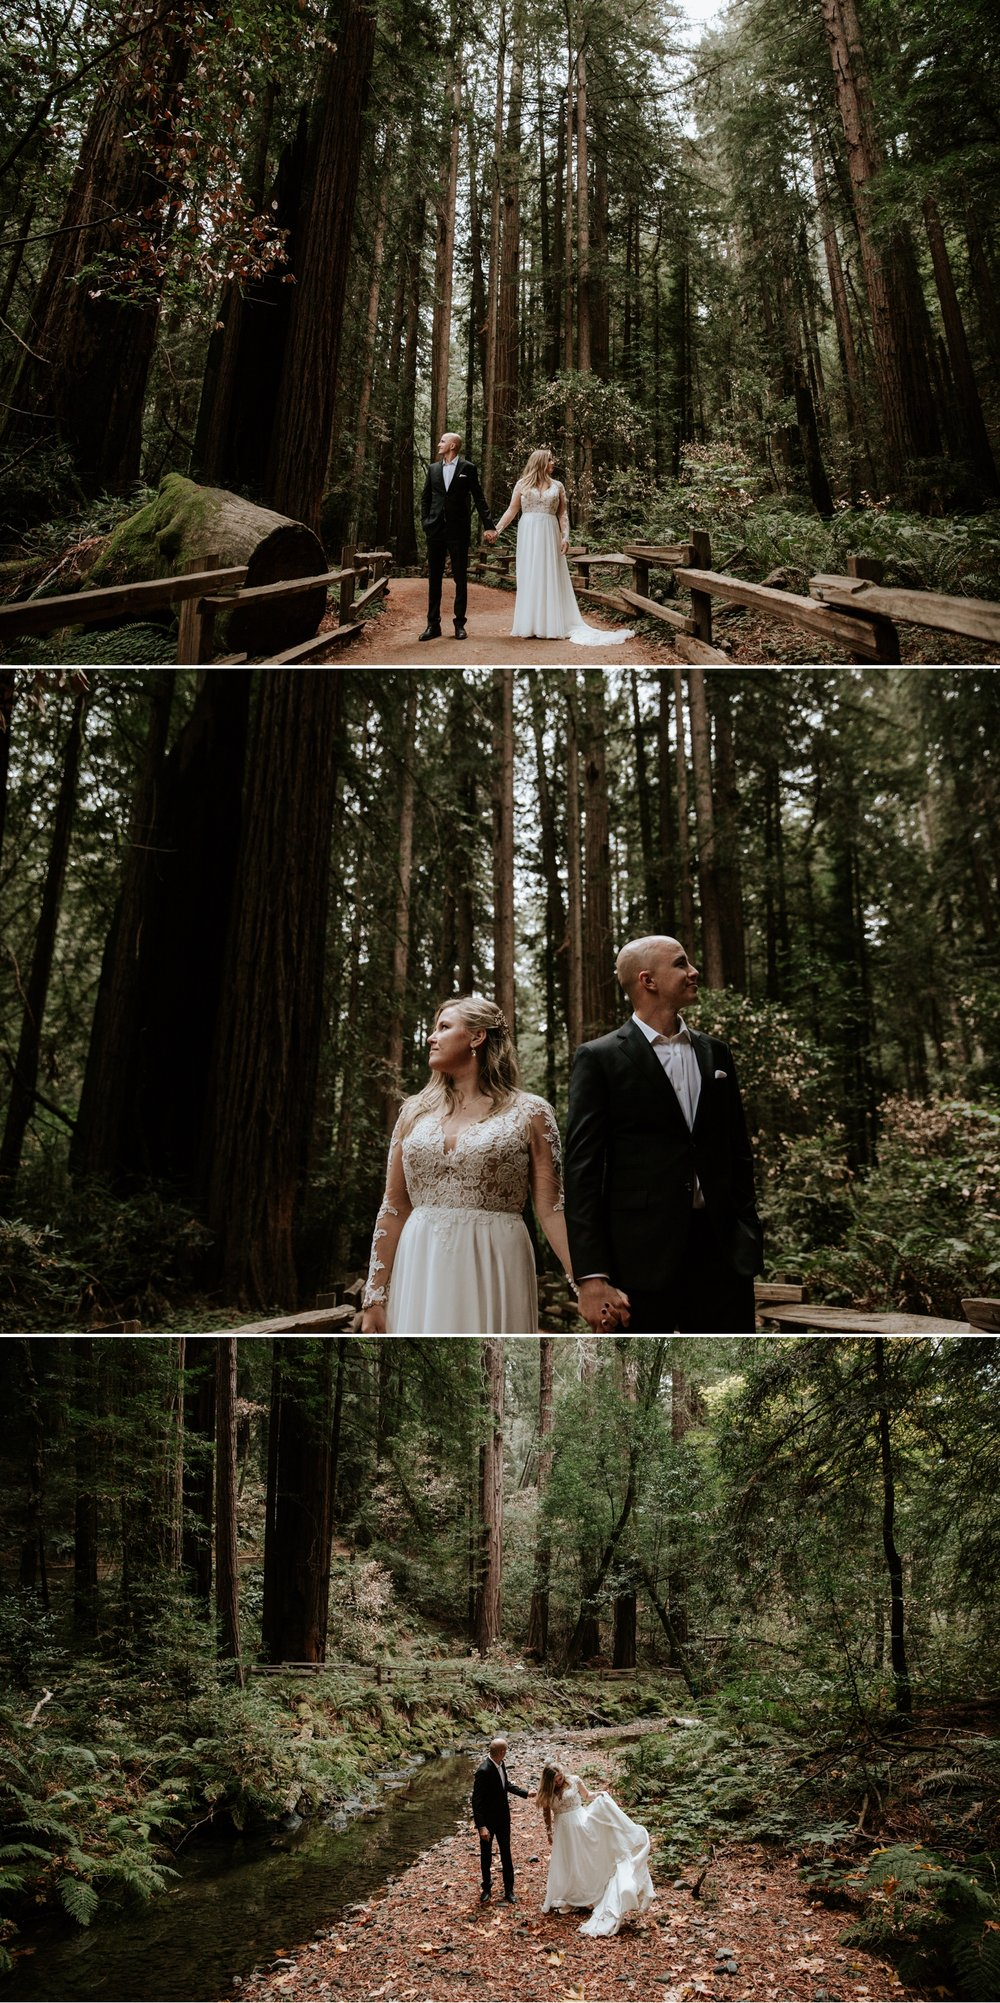 hannah-nick-intimate-muir-woods-wedding-28.jpg